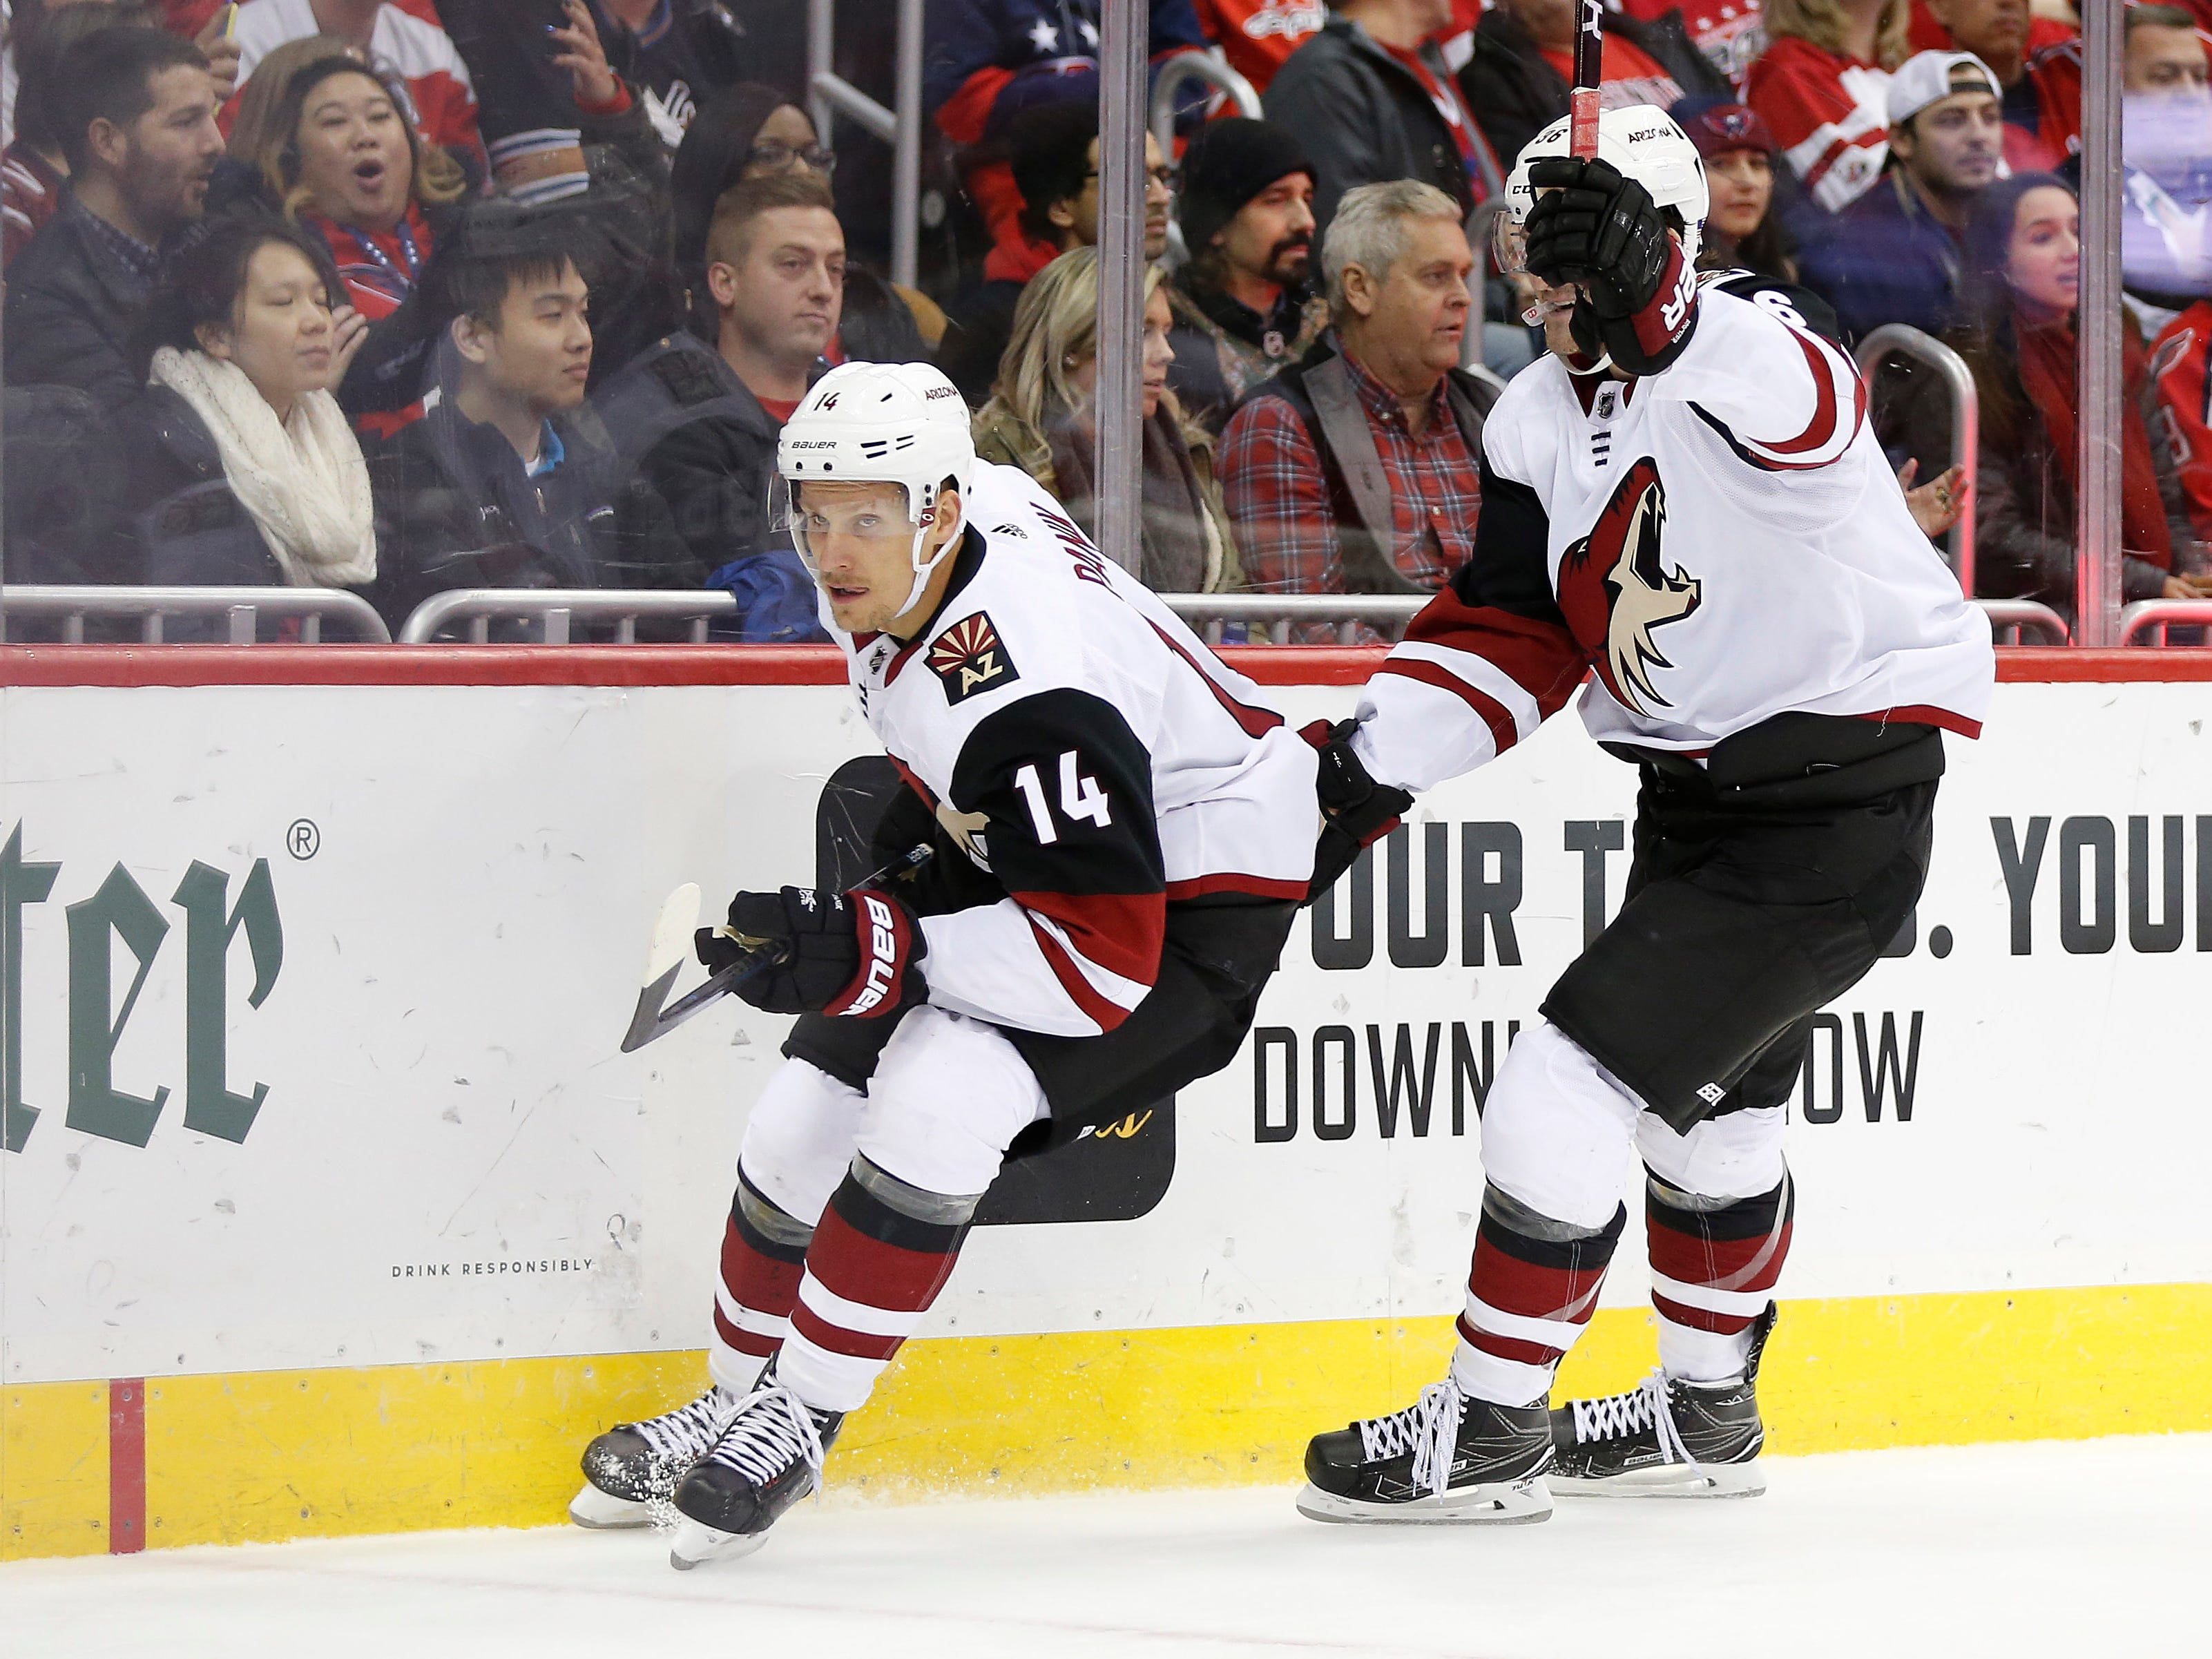 Nov 11, 2018; Washington, DC, USA; Arizona Coyotes right wing Richard Panik (14) celebrates with Arizona Coyotes right wing Christian Fischer (36) after scoring a goal during the second period against the Washington Capitals at Capital One Arena. Mandatory Credit: Amber Searls-USA TODAY Sports